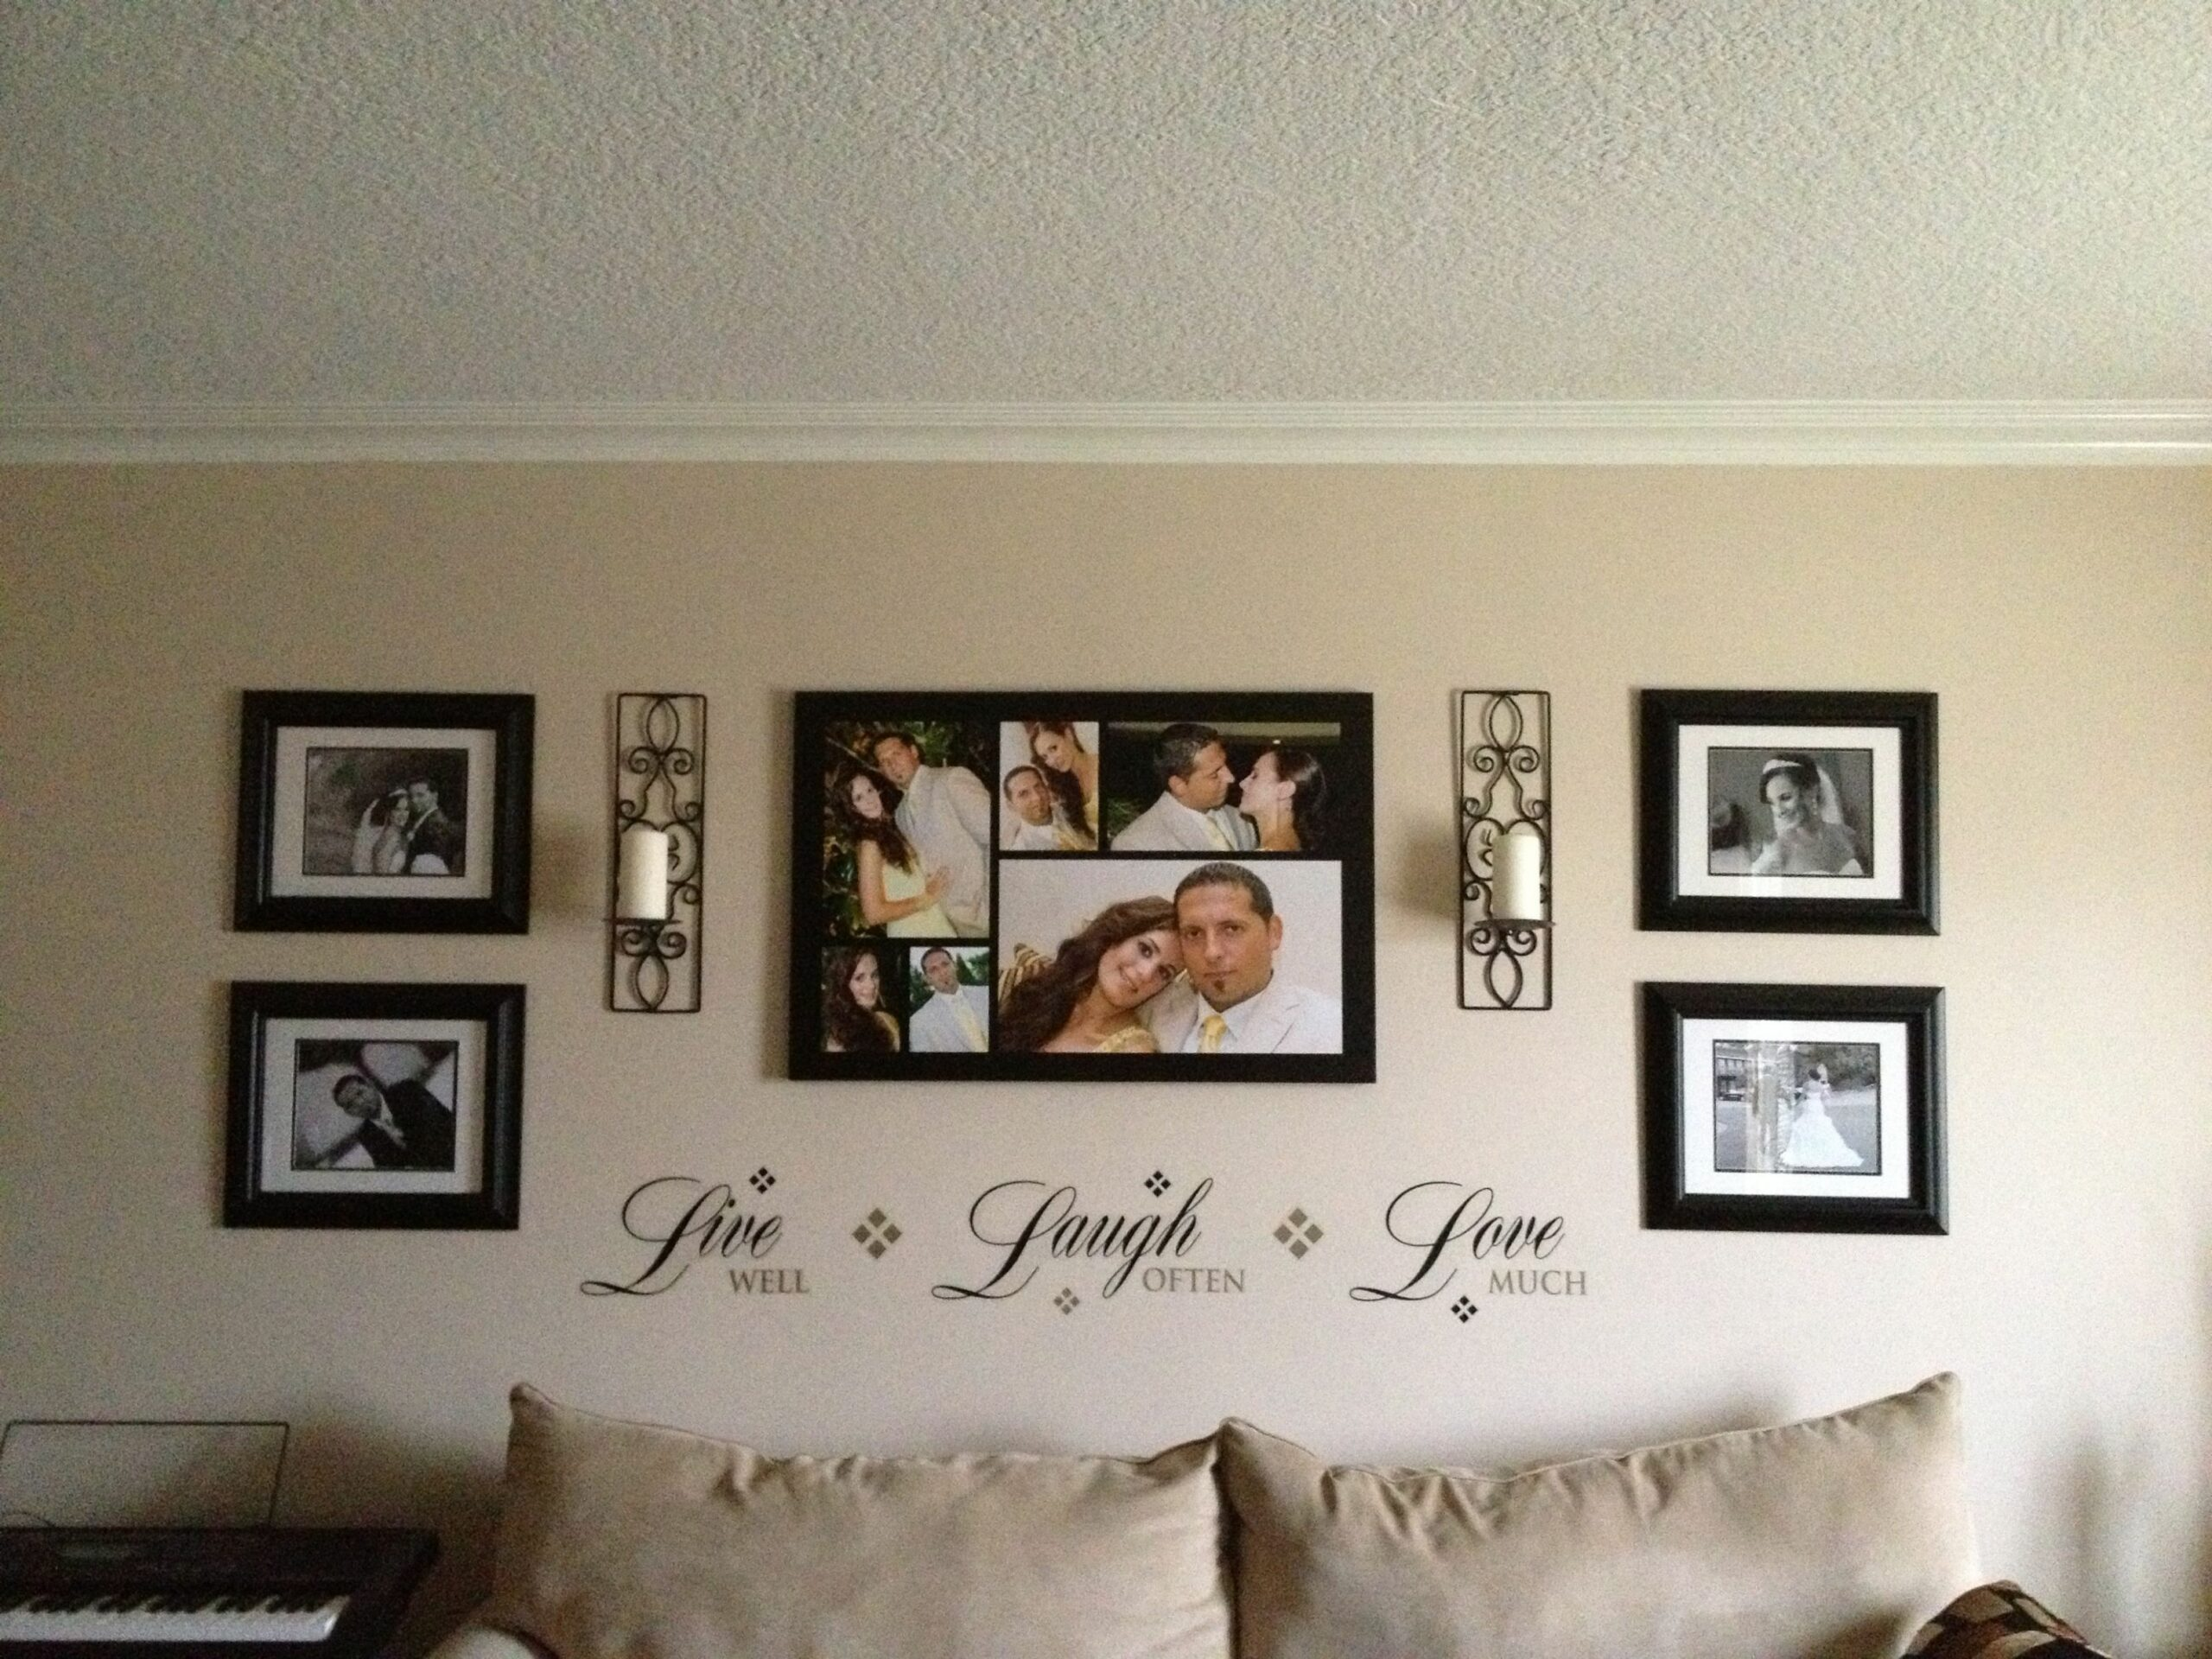 Wall Picture Decor | Wall decor bedroom, Wall decor living room ..